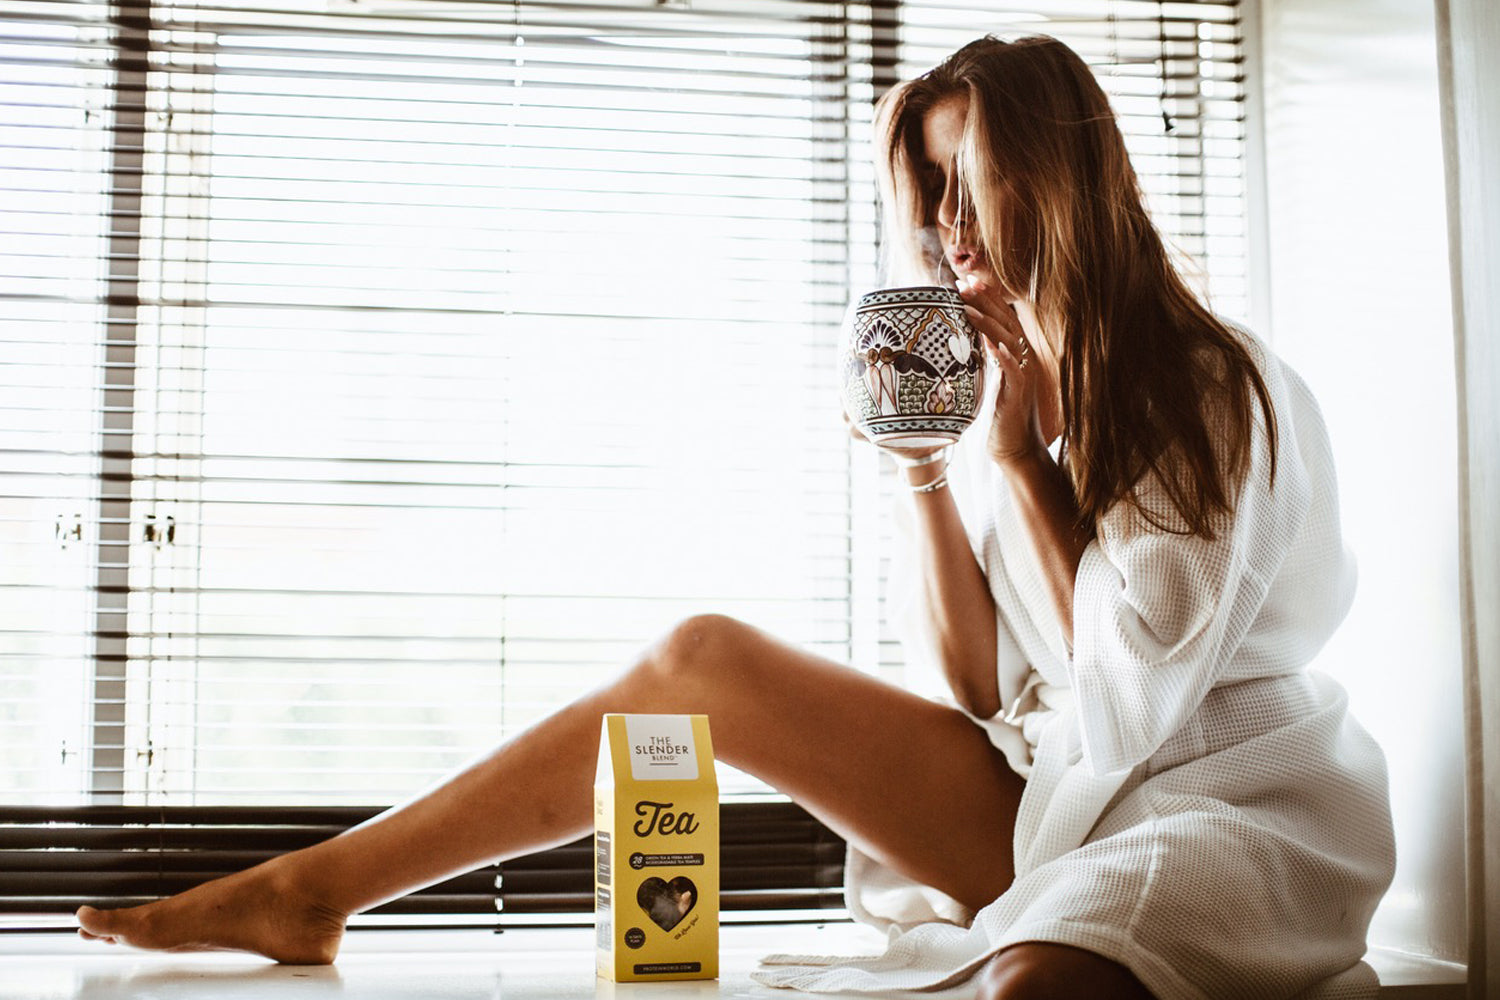 Girl with Slender tea sitting by window